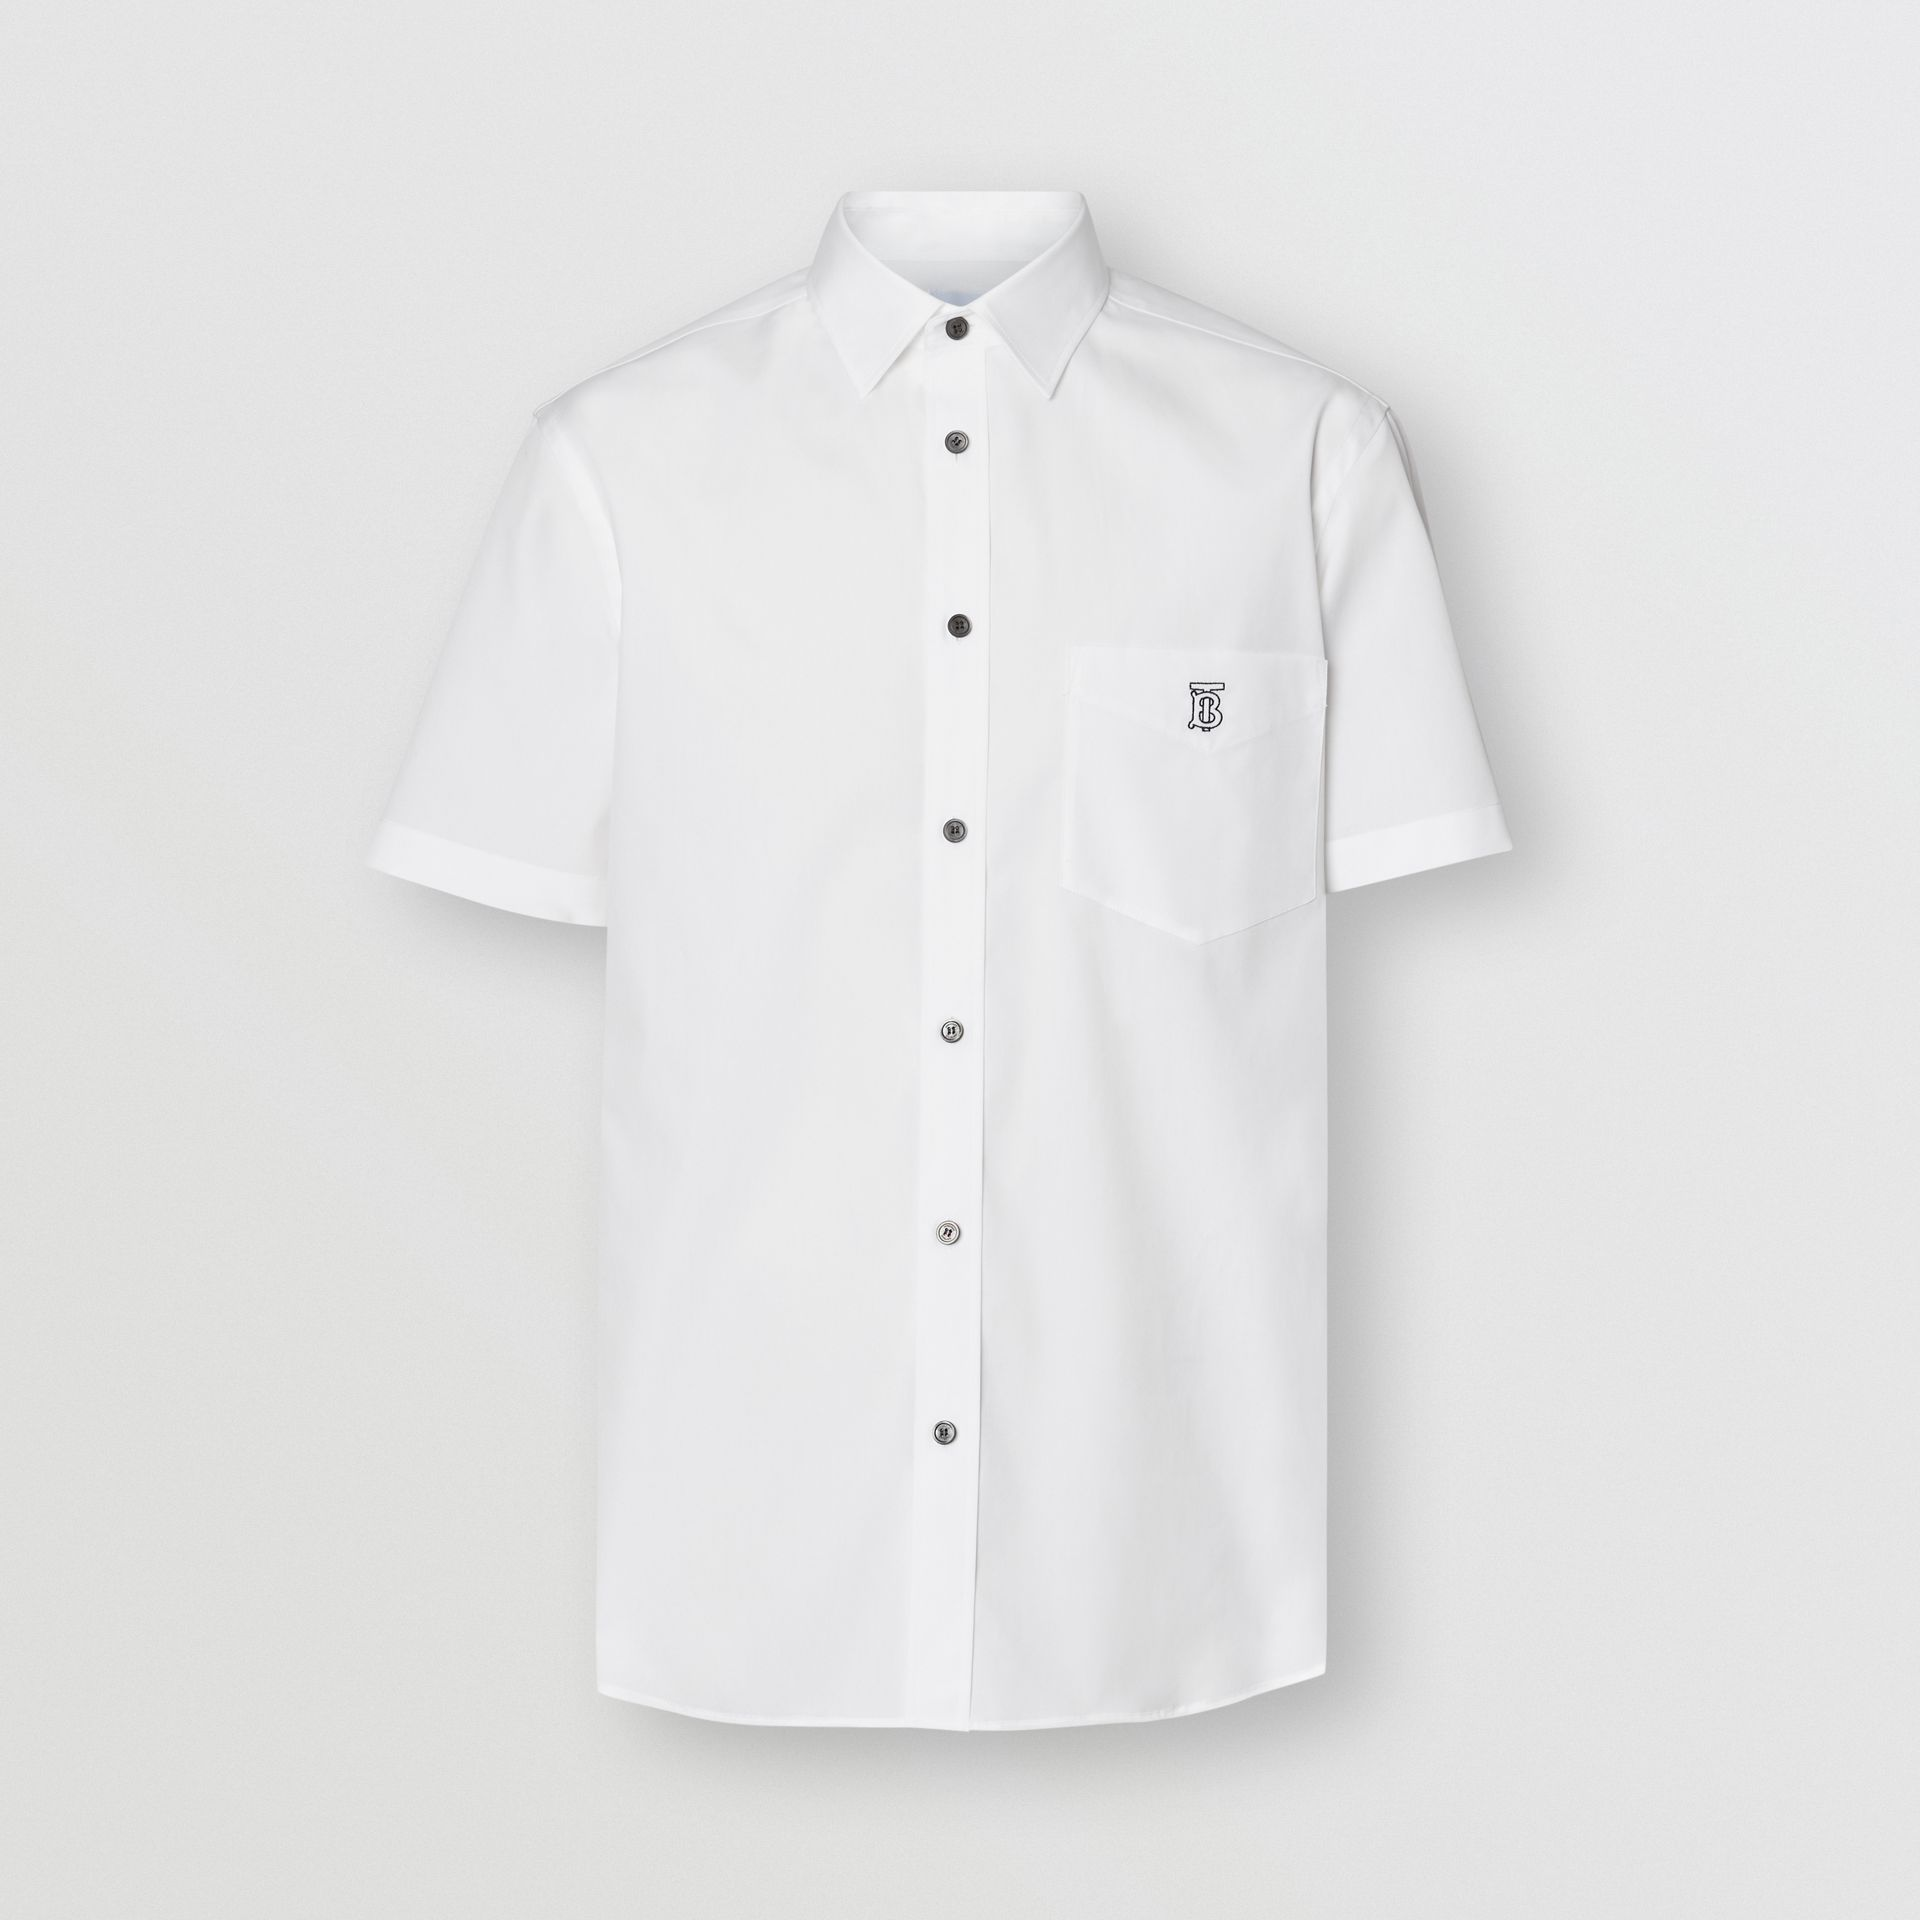 Short-sleeve Monogram Motif Stretch Cotton Shirt in White - Men | Burberry United Kingdom - gallery image 3